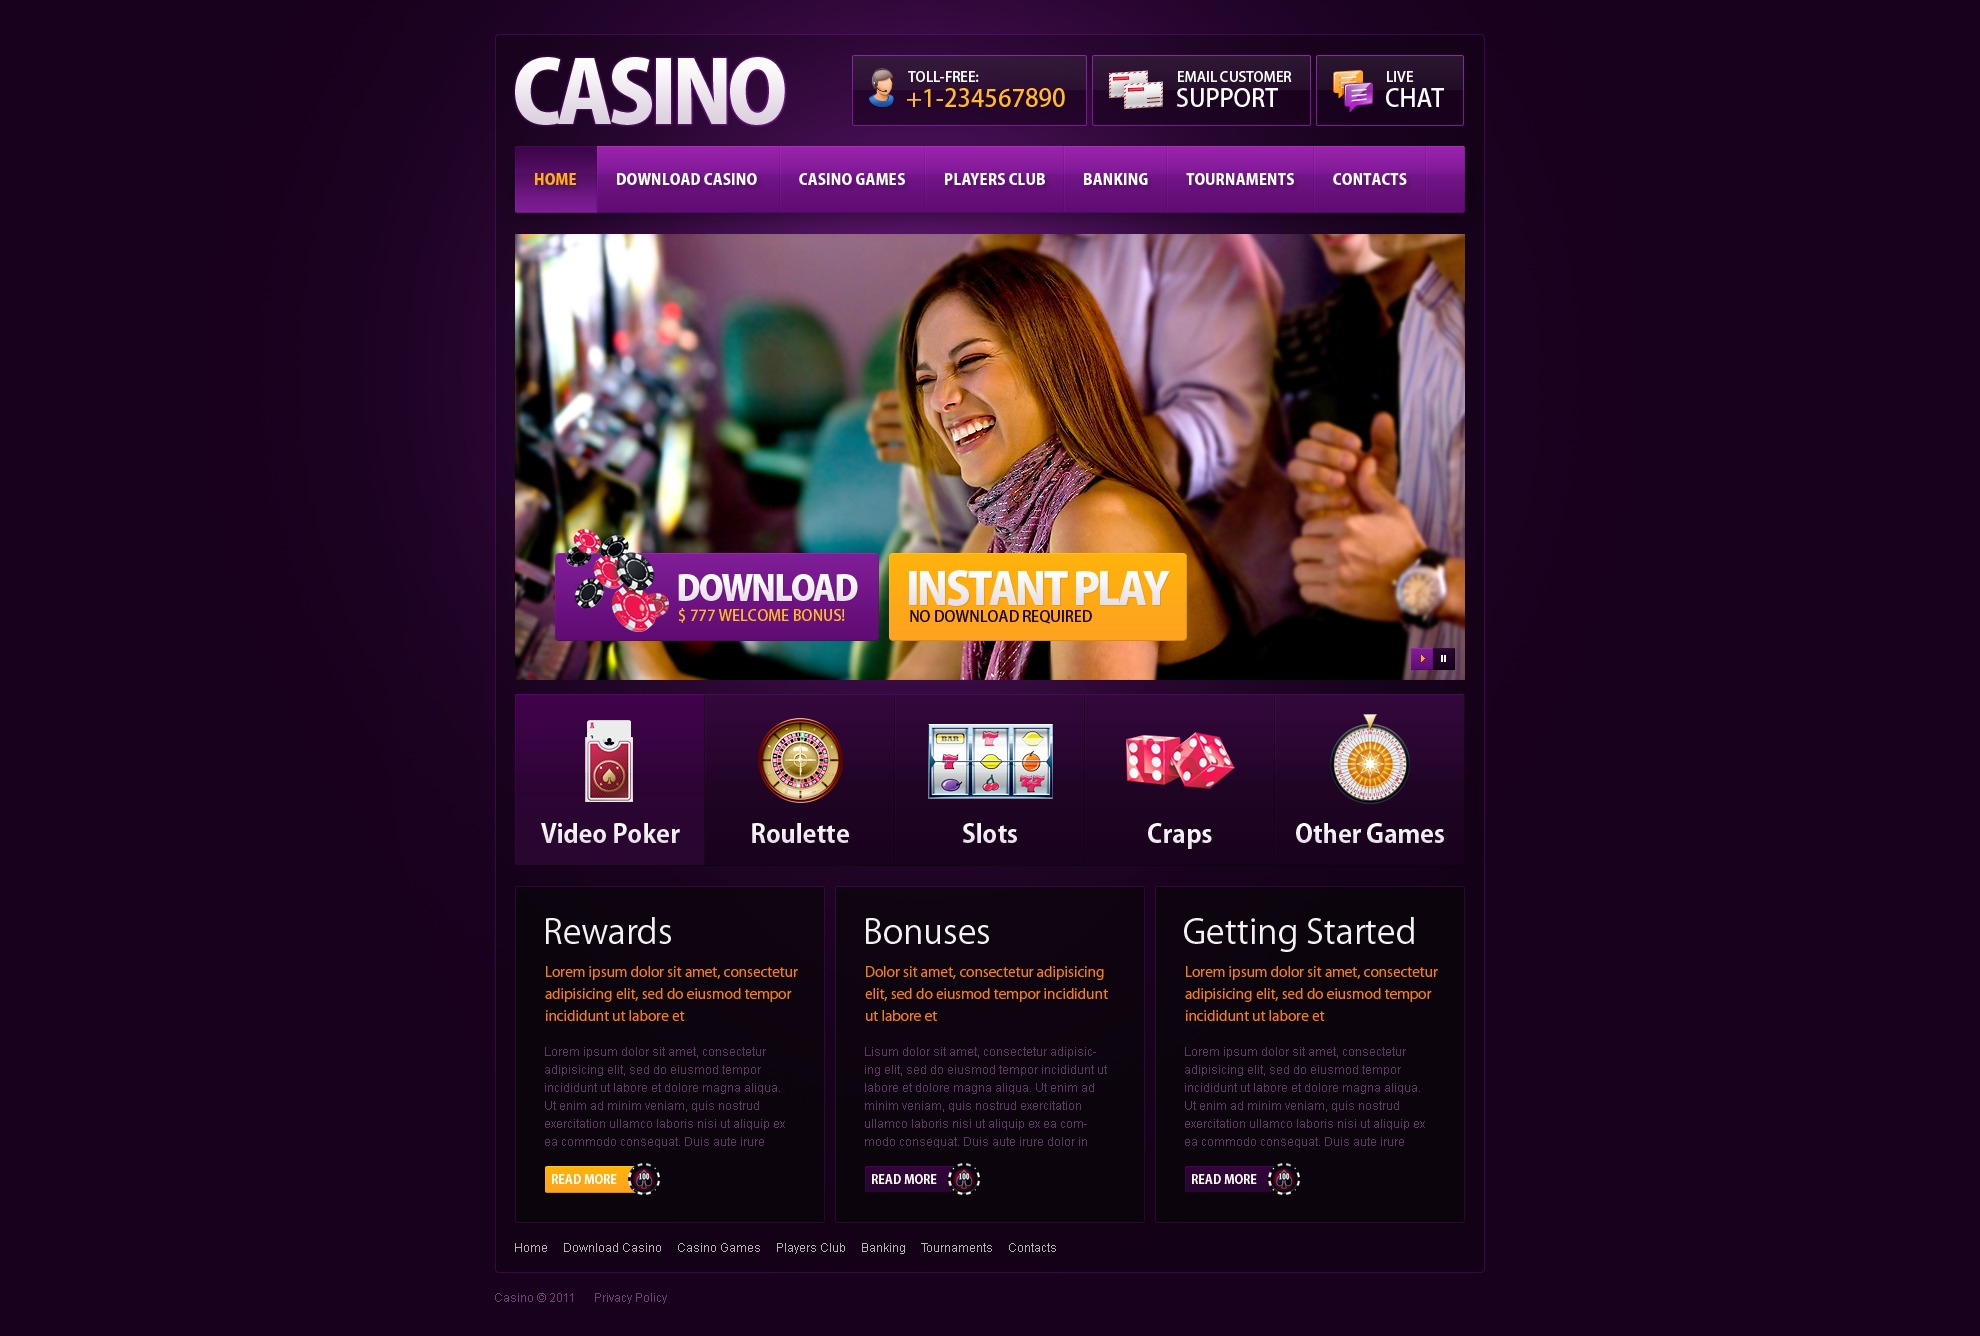 Website Vorlage für Online Casino #35010 - Screenshot